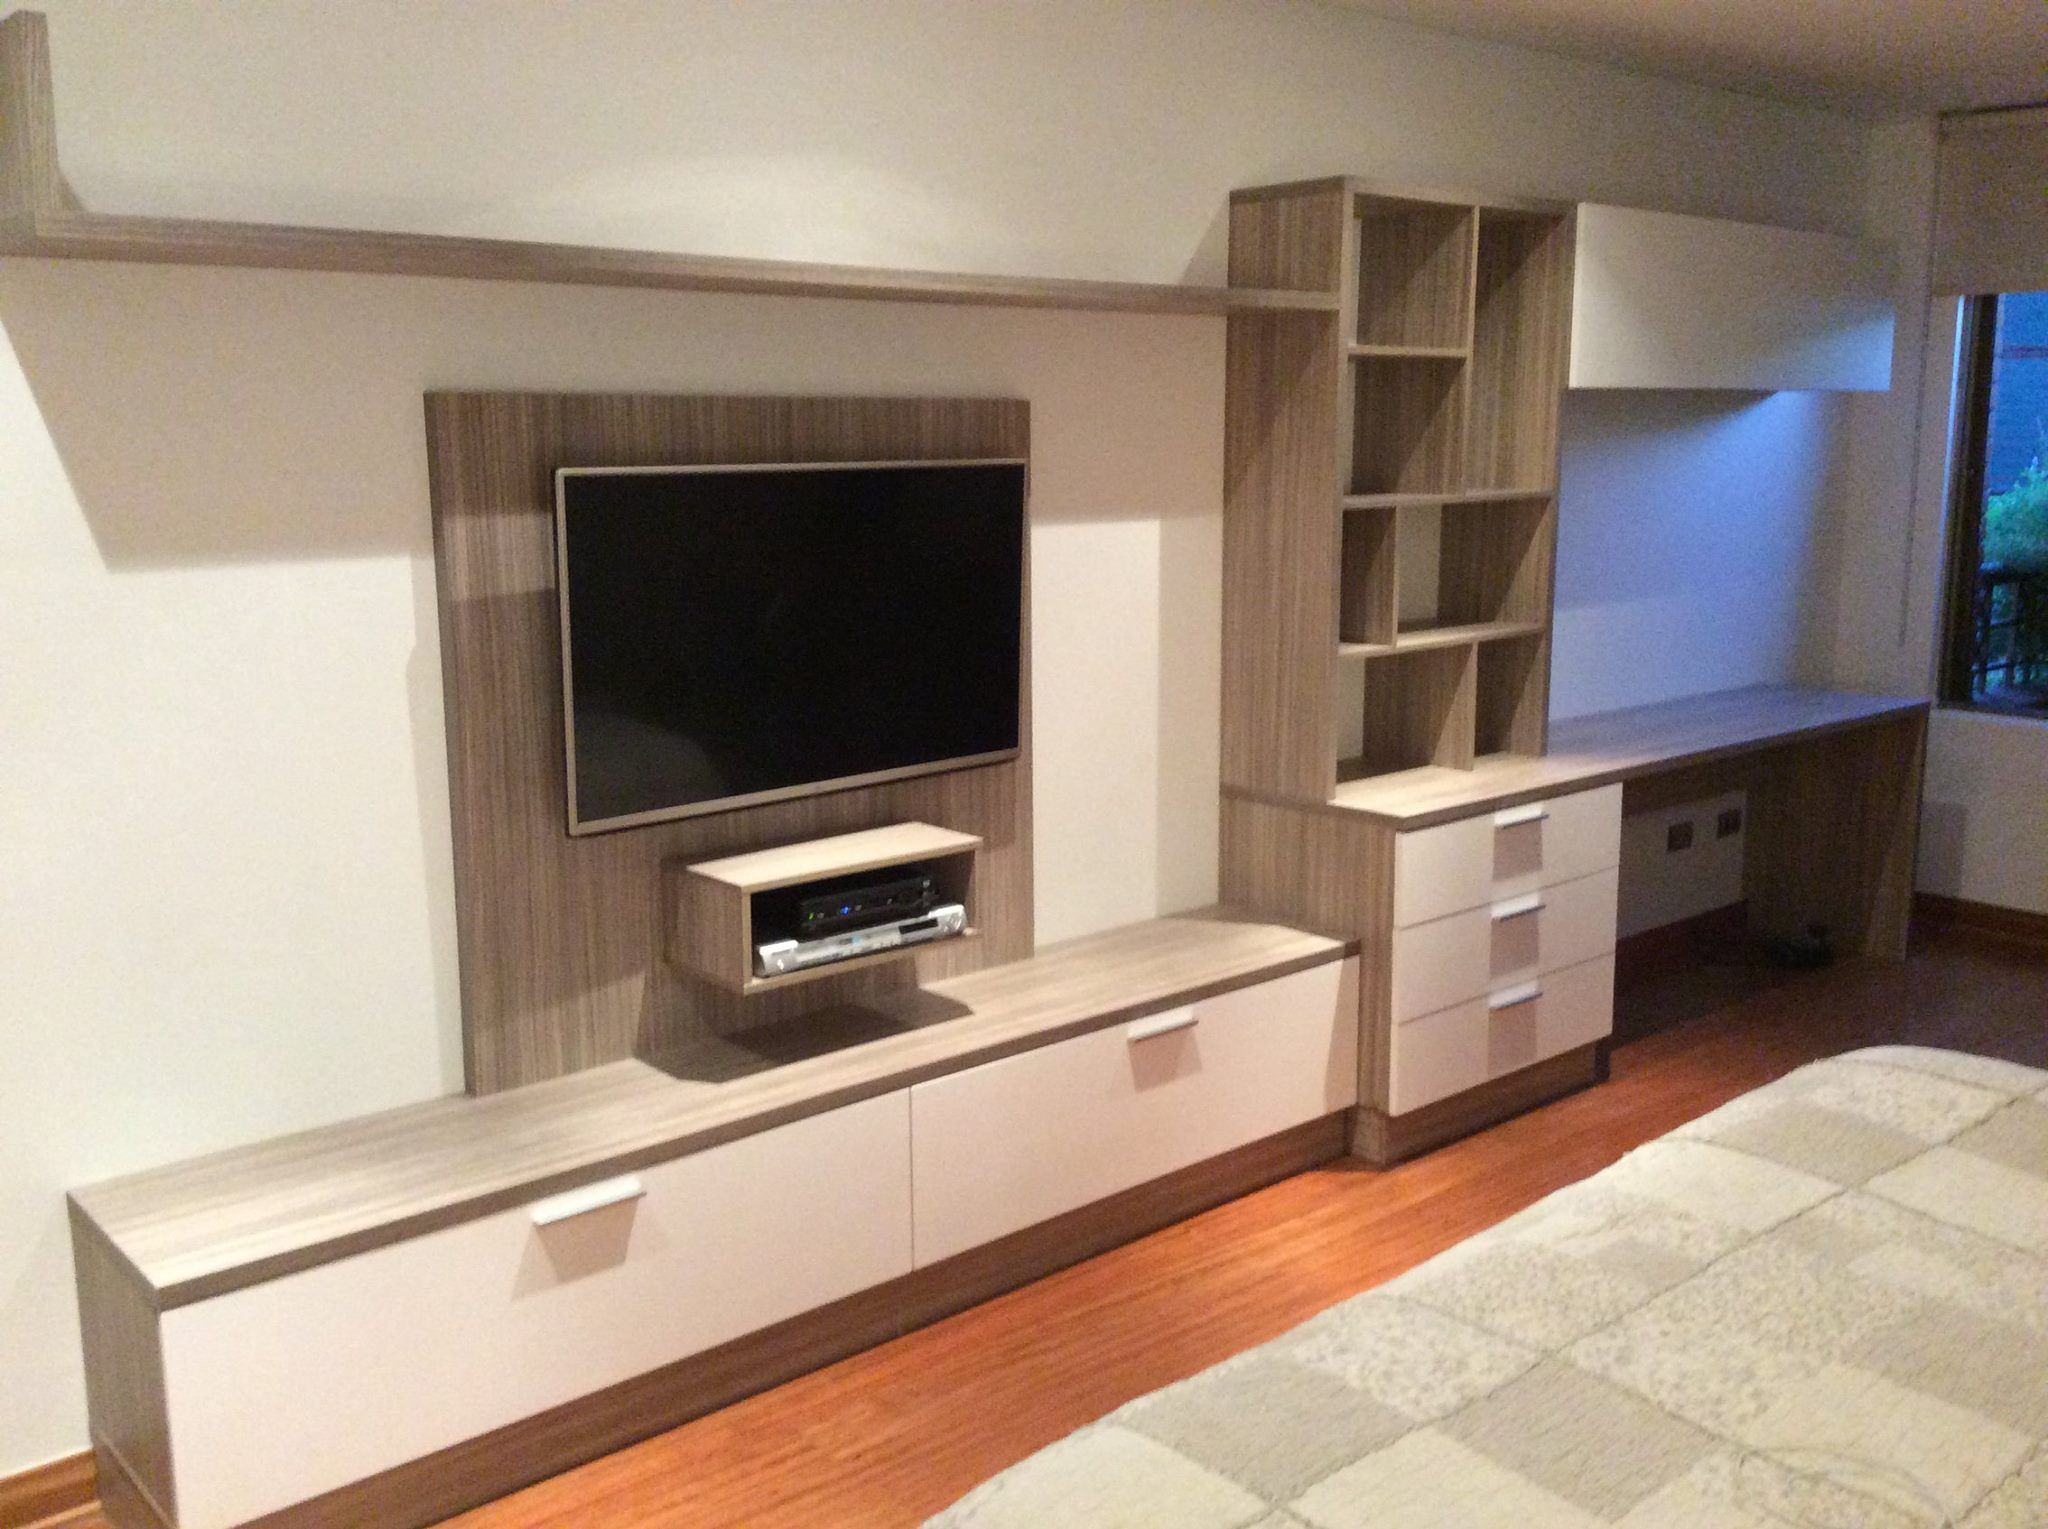 Mueble tv dormitorio muebles d m furniture home decor - Muebles tv valencia ...